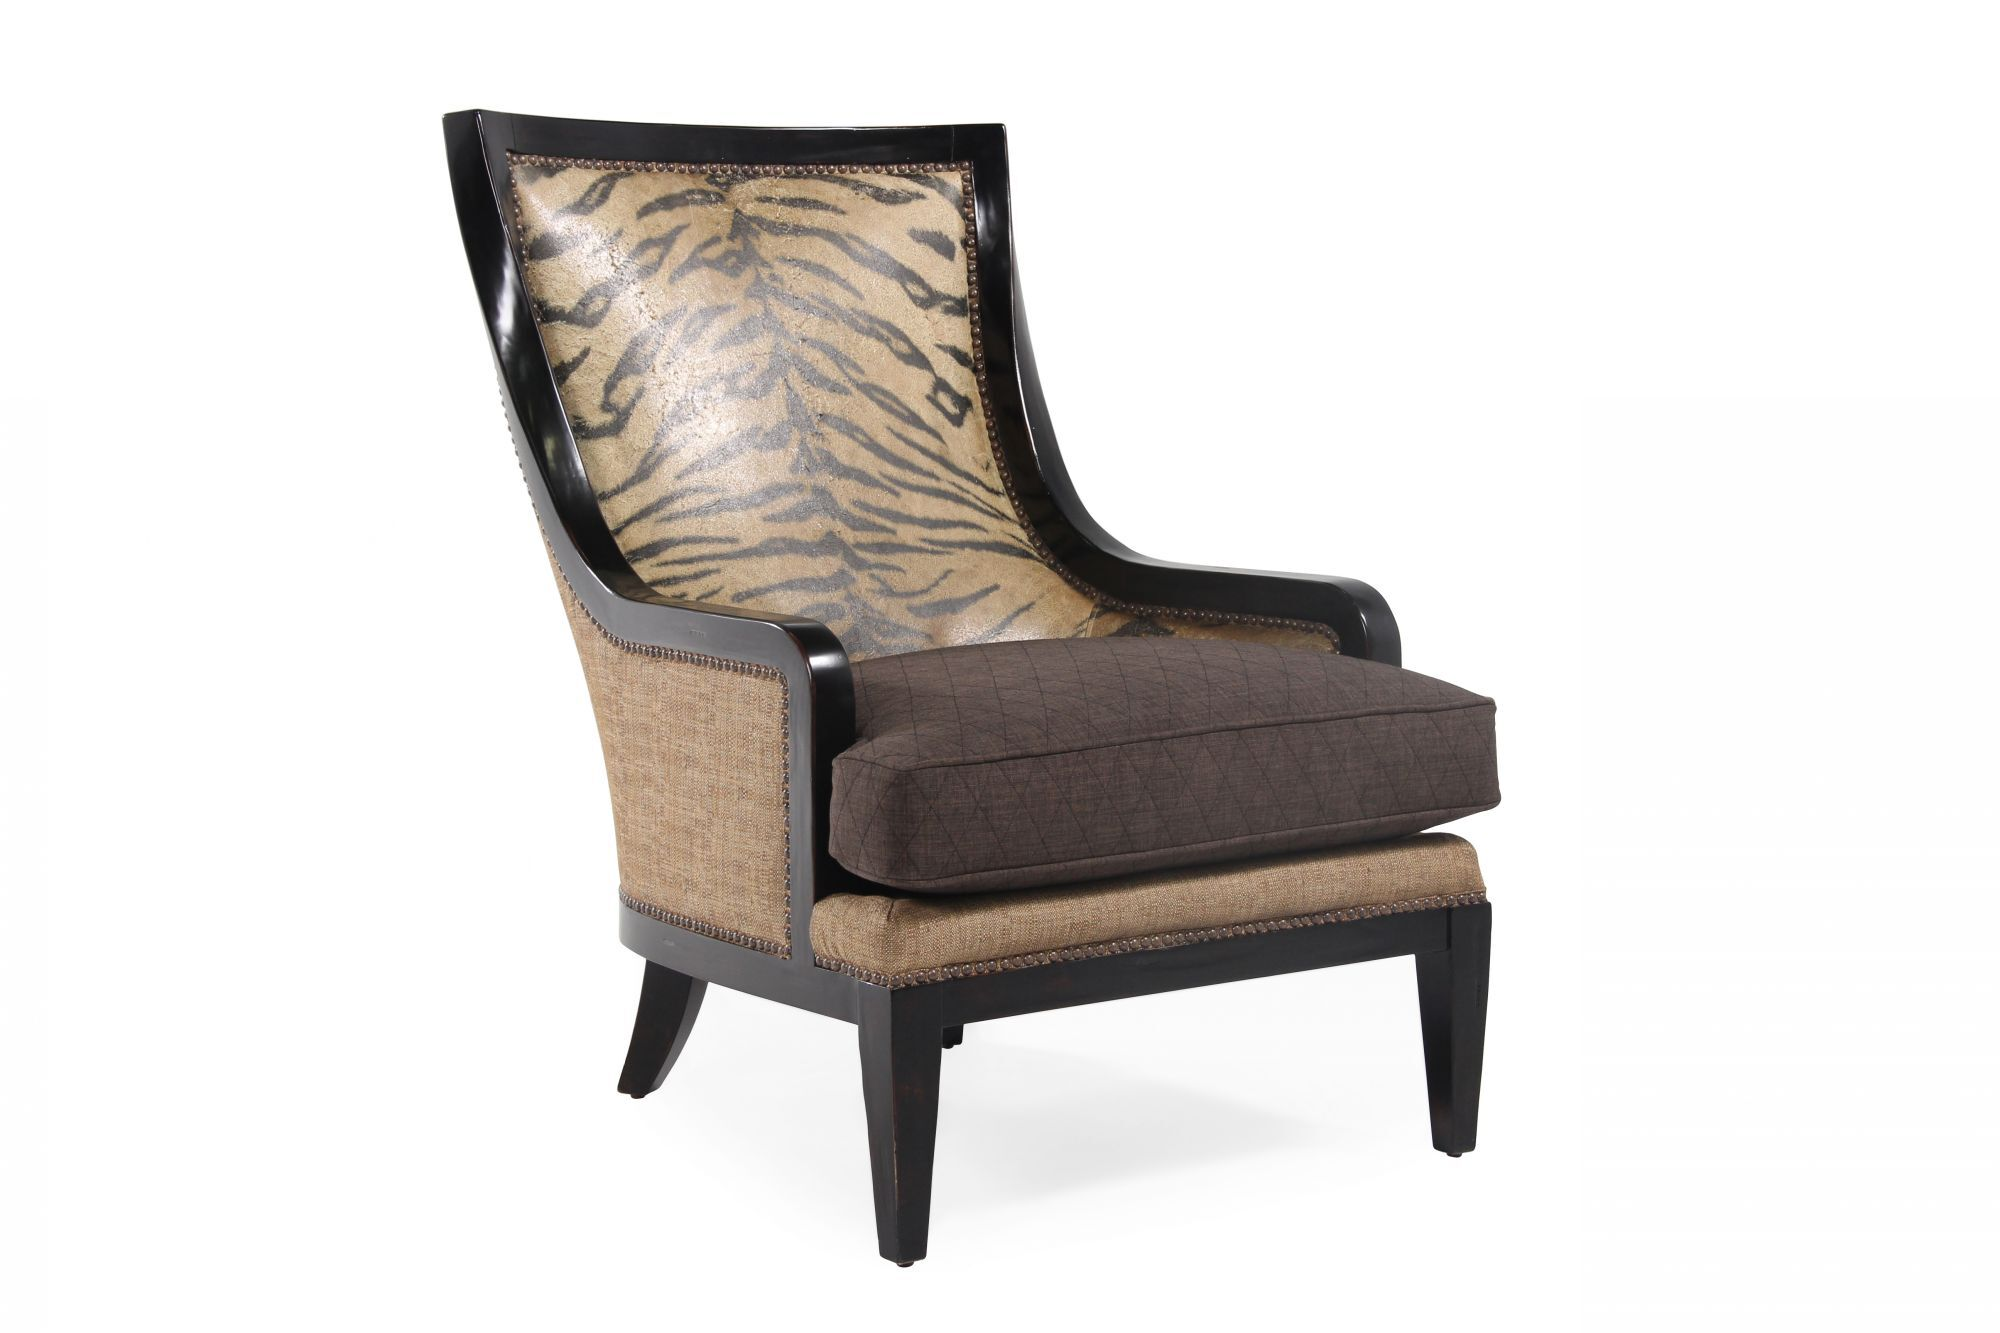 Zebra Accent Chair A R T Furniture Foundry Zebra Accent Chair Mathis